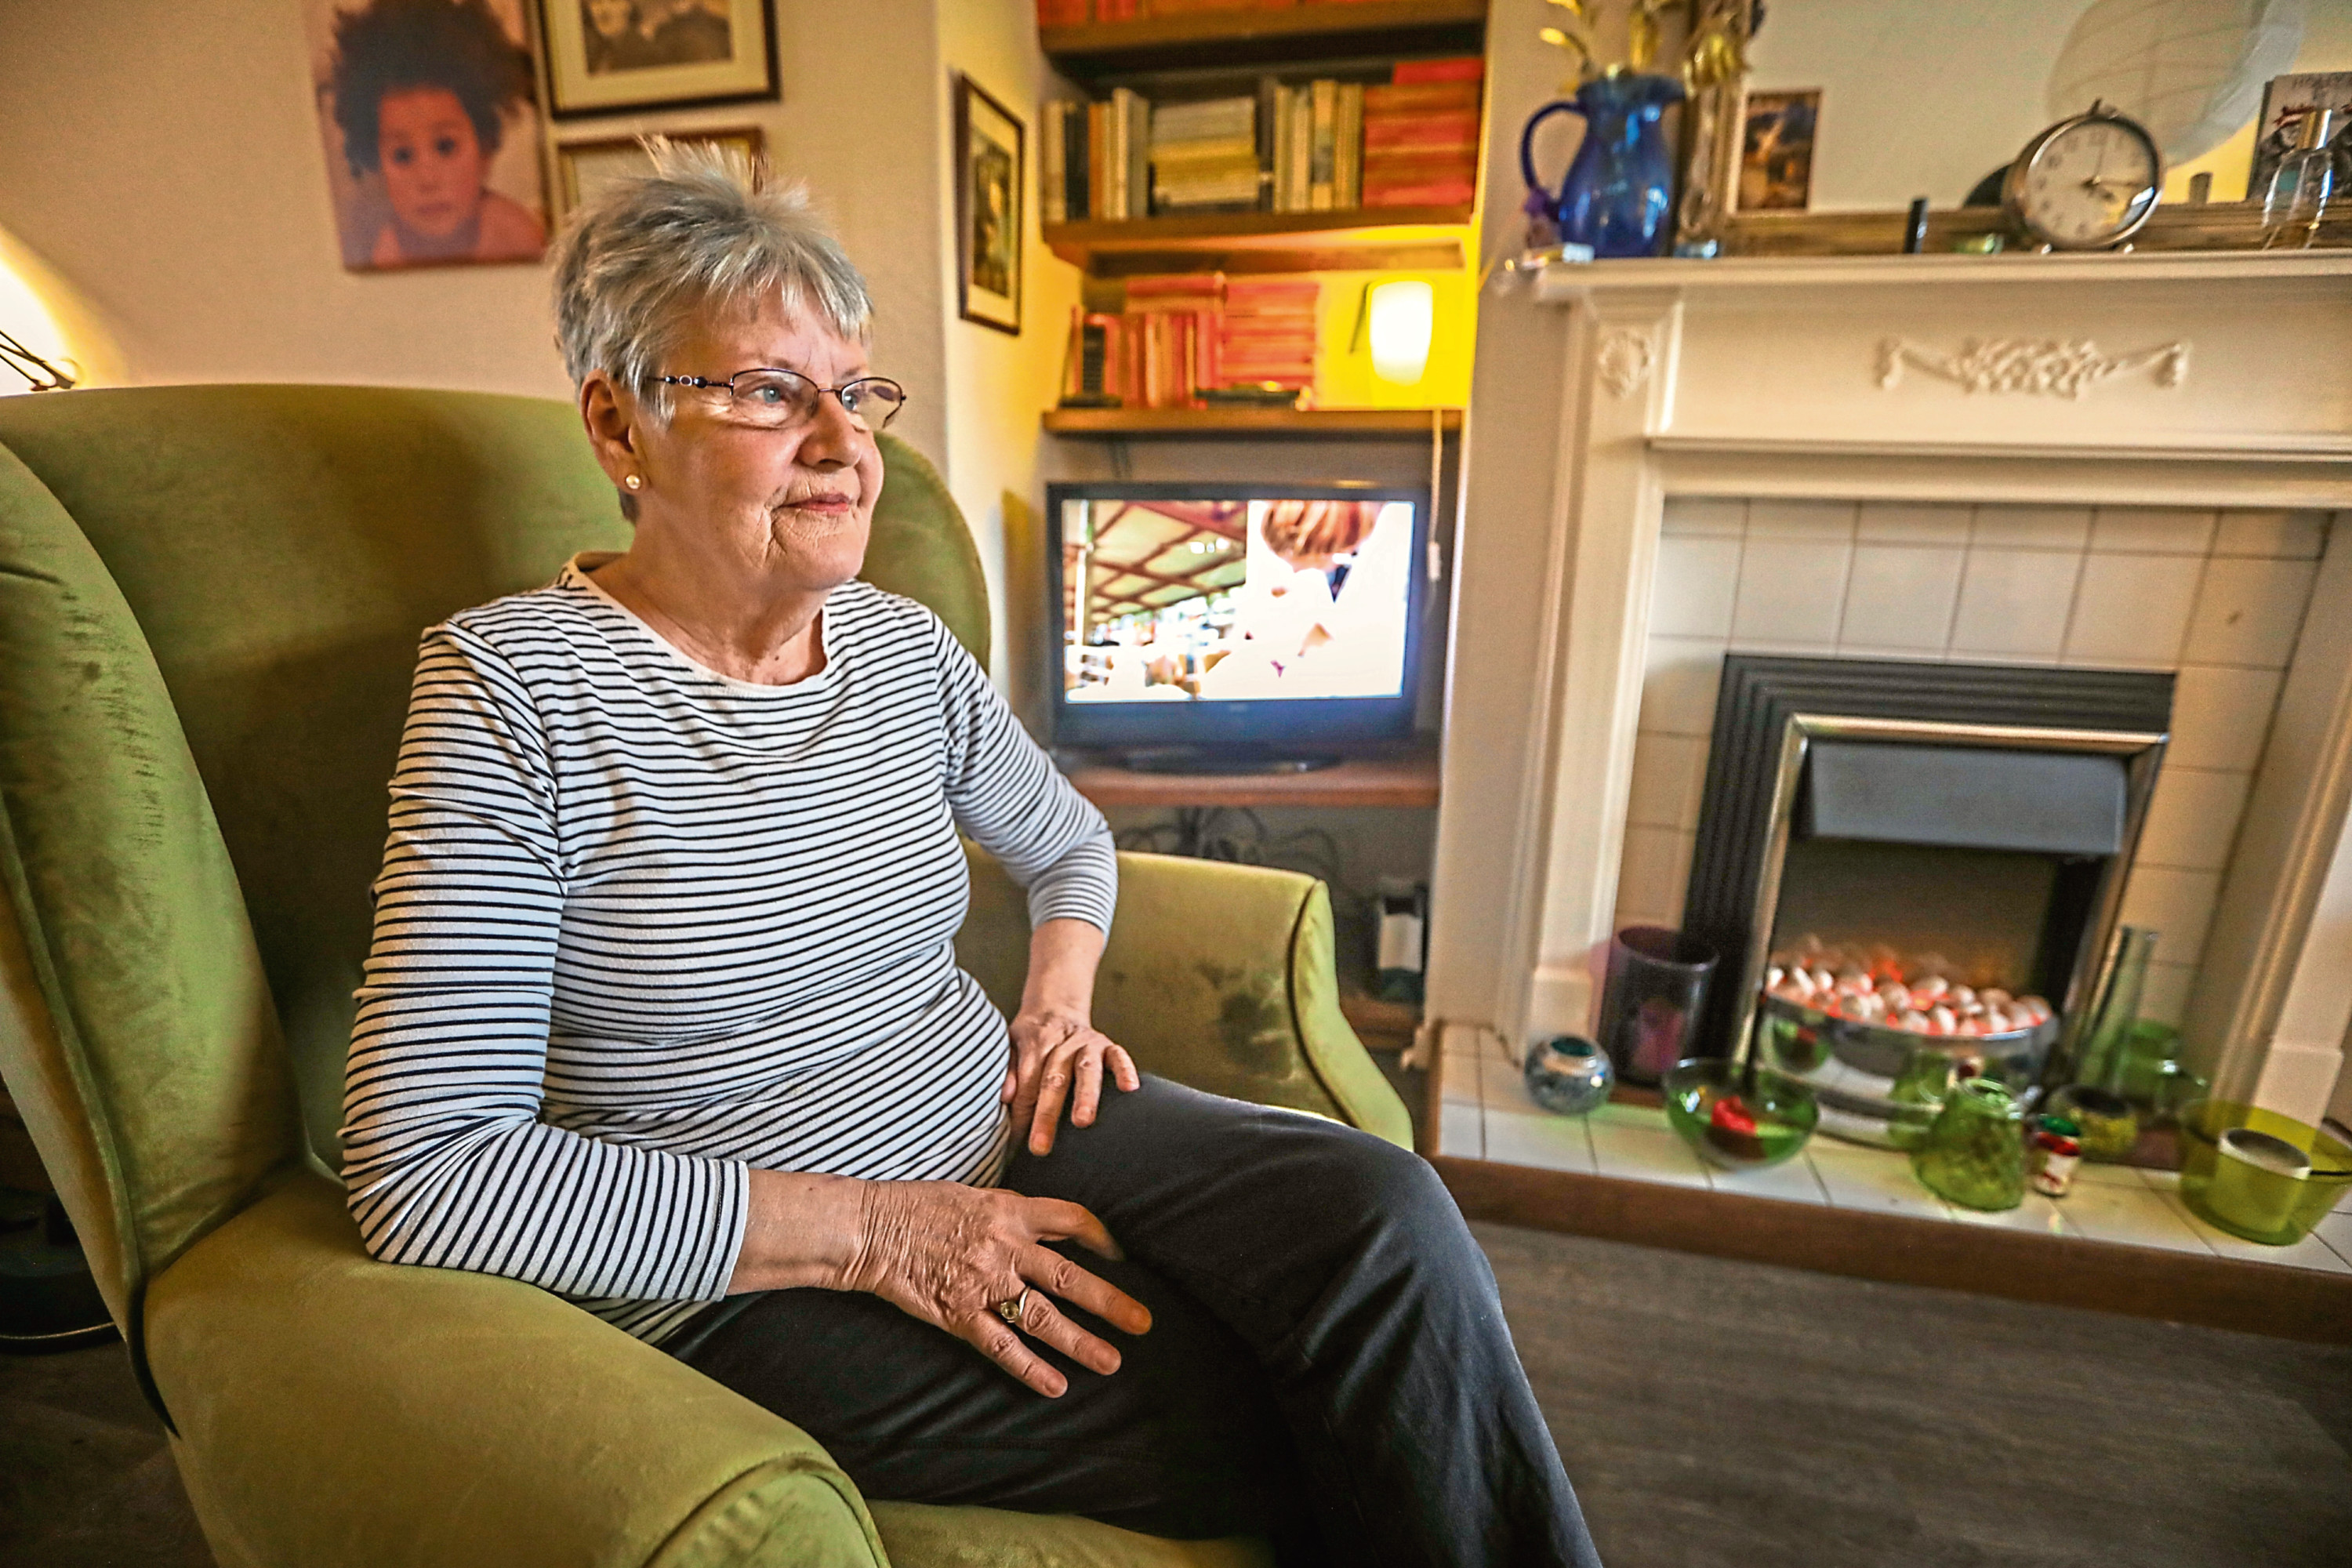 Dorothy McHugh, the secretary of Dundee Pensioners Forum, warned that just under half of city pensioners don't have internet access